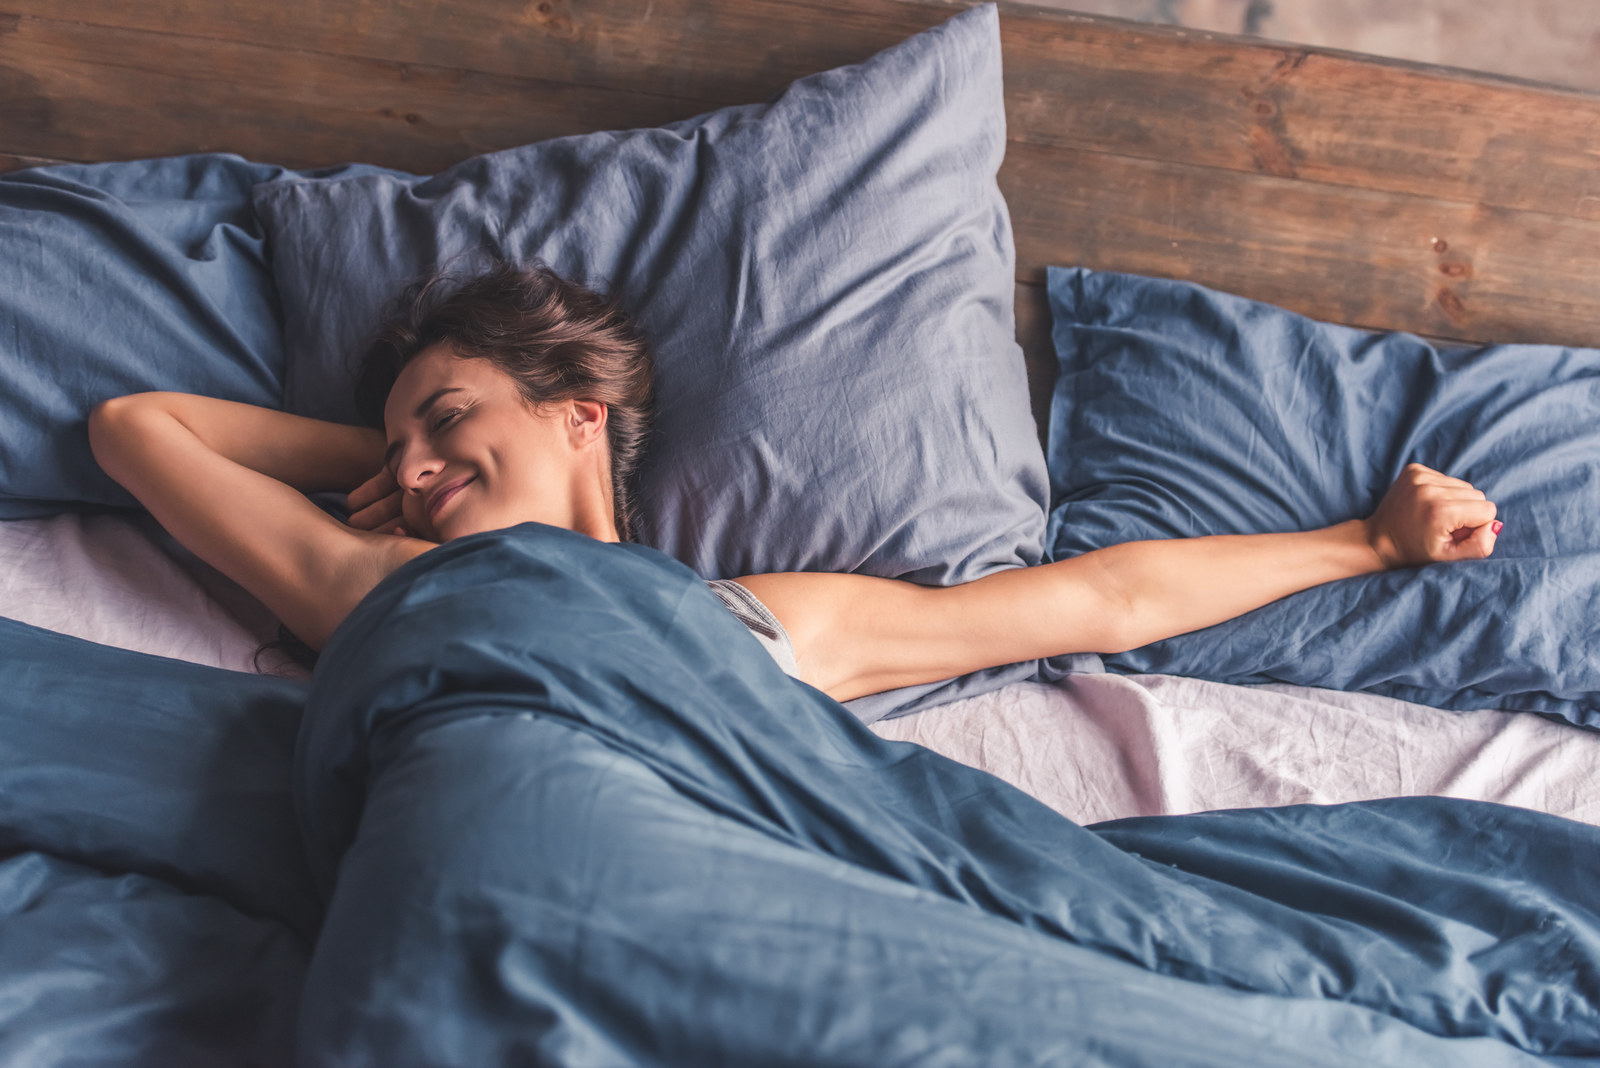 Whether it's the paint on the walls or the sheets on your bed, find a way to incorporate blue into the color scheme of your room. According to the National Sleep Foundation, the color blue can reduce blood pressure and lower your heart rate, which can help you get some shut-eye.